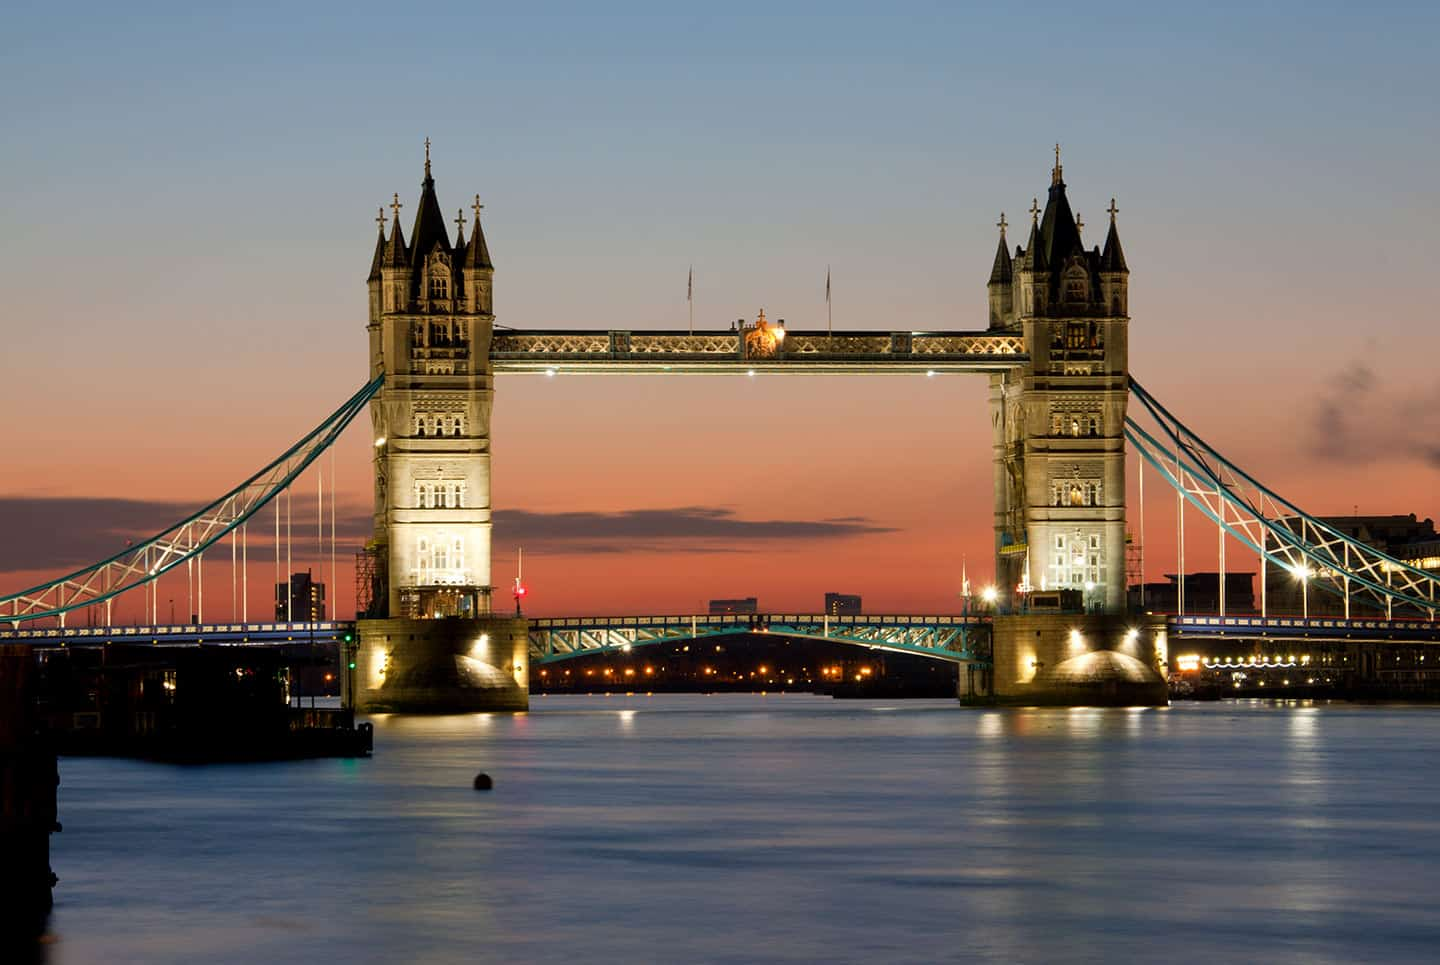 Image of Tower Bridge in London at dawn